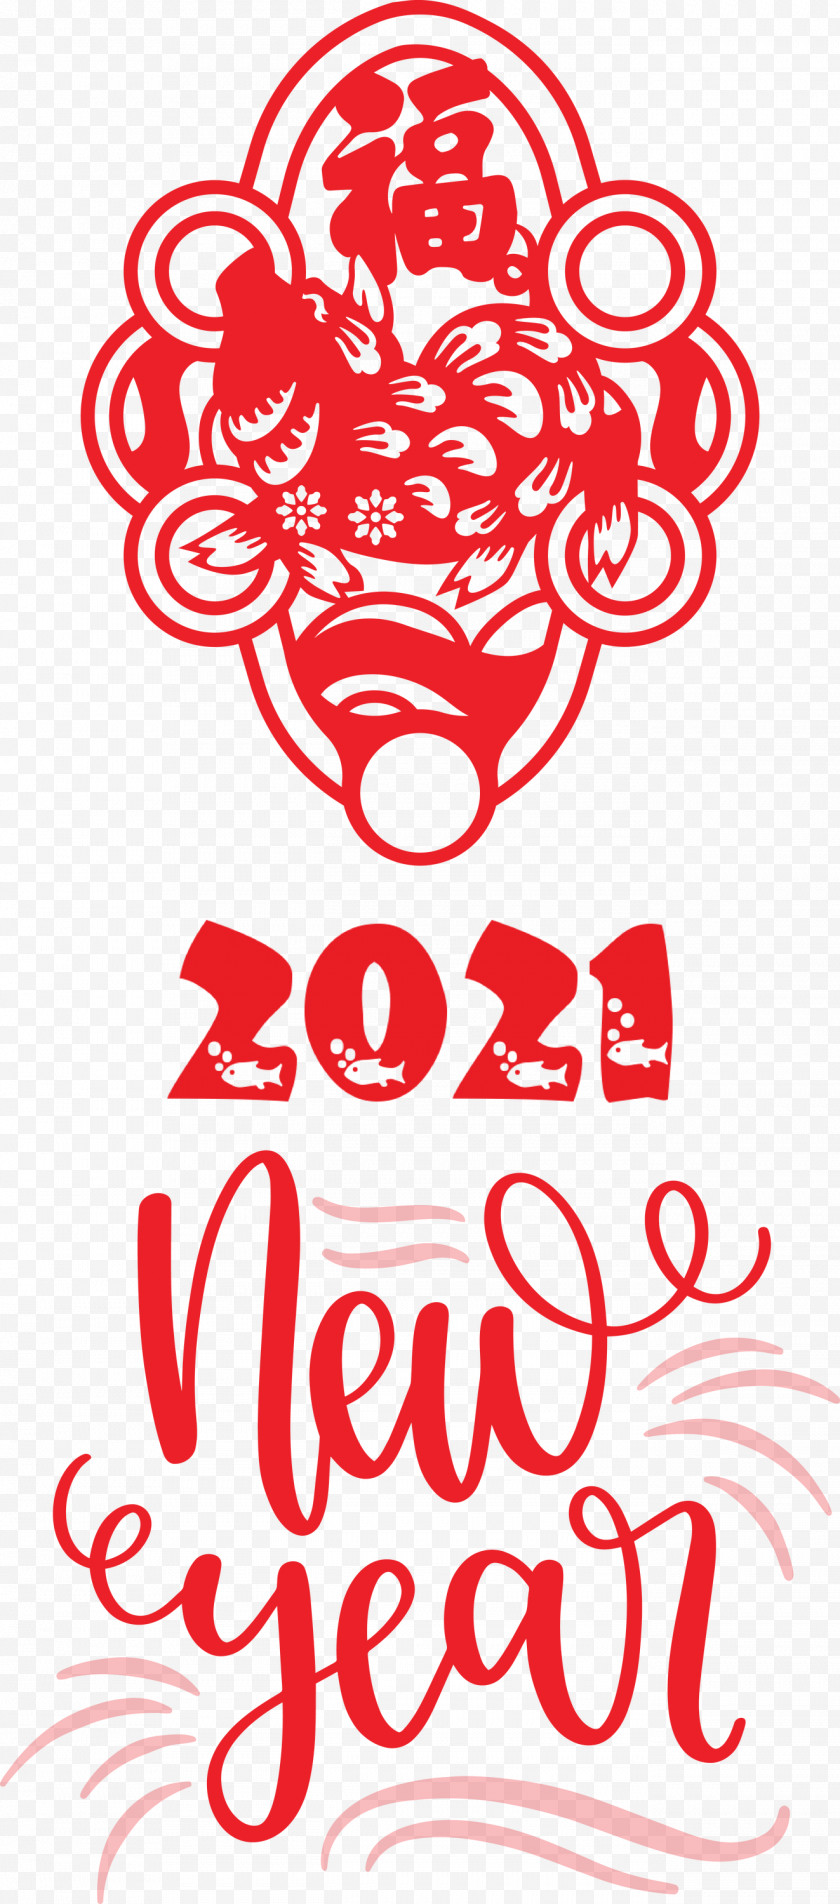 Happy Chinese New Year 2021 Chinese New Year Happy New Year Free PNG